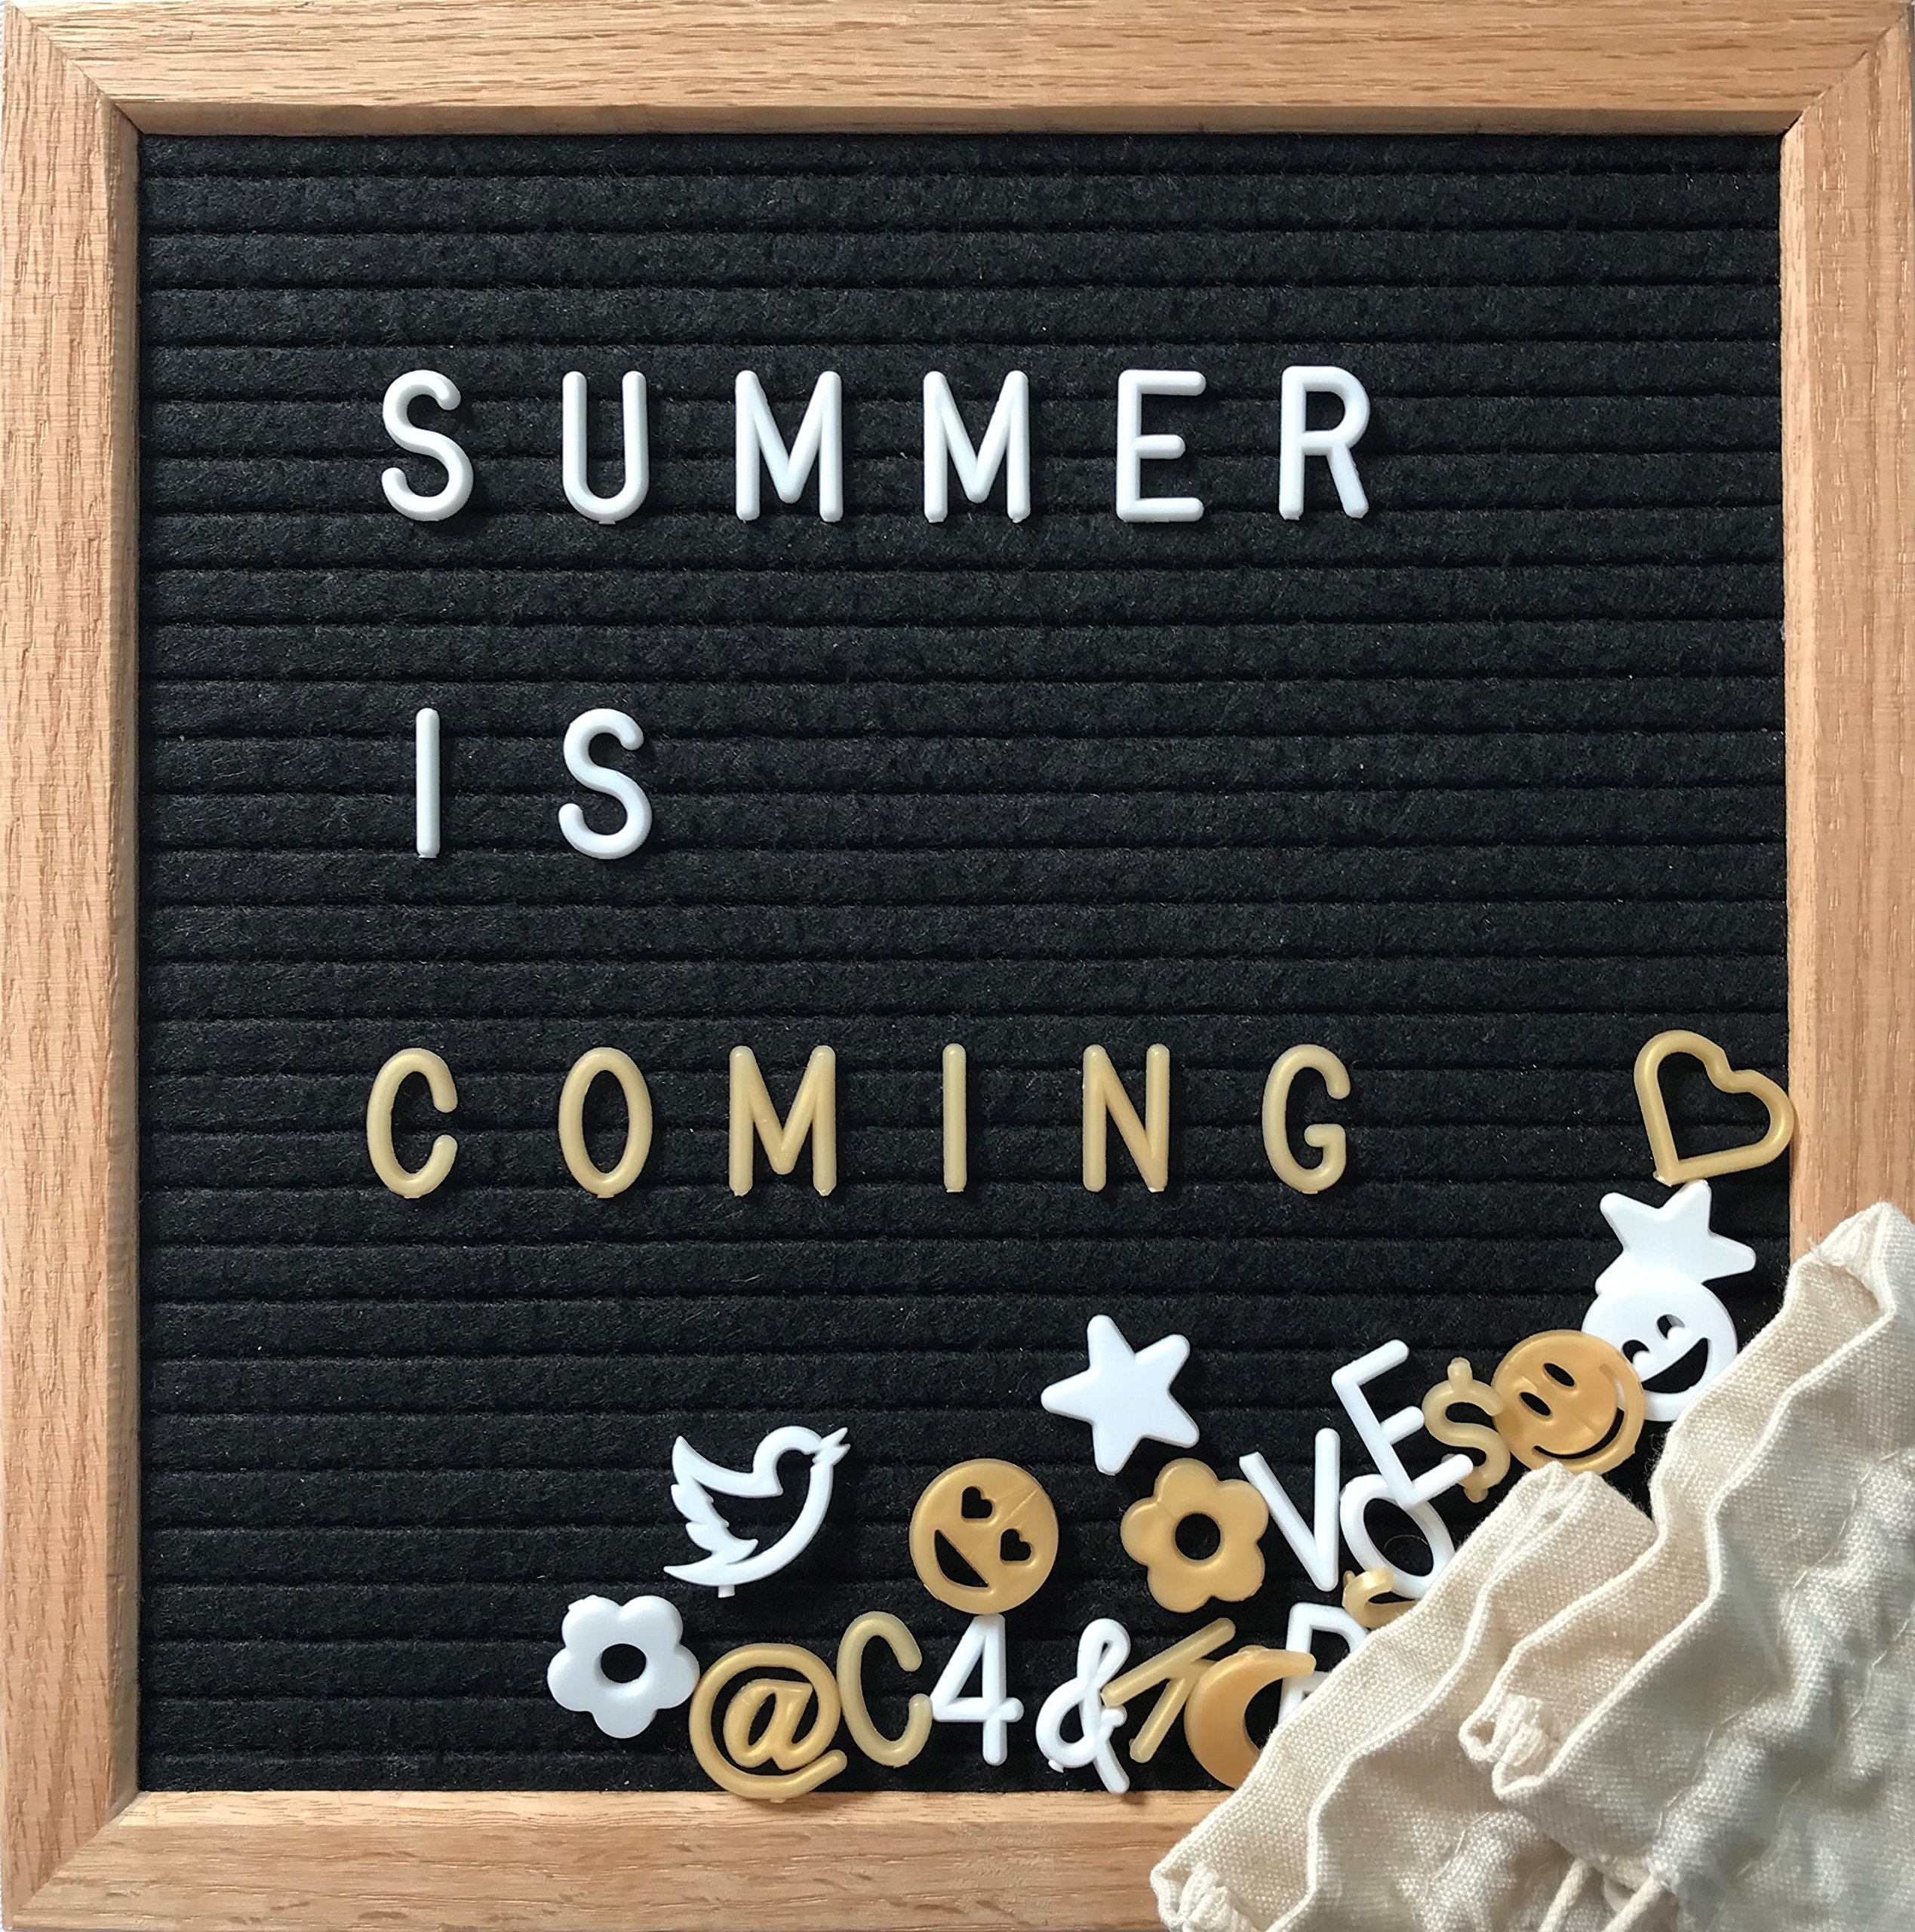 Black Felt Letter Board 10x10 Inches. Changeable Letter Board SUPER BUNDLE | 380 Pre-Cut WHITE & GOLD Letters, Numbers, Emojis | Wooden Oak Frame, Wall Mount, BONUS Stand & 2 FREE Storage Bags.